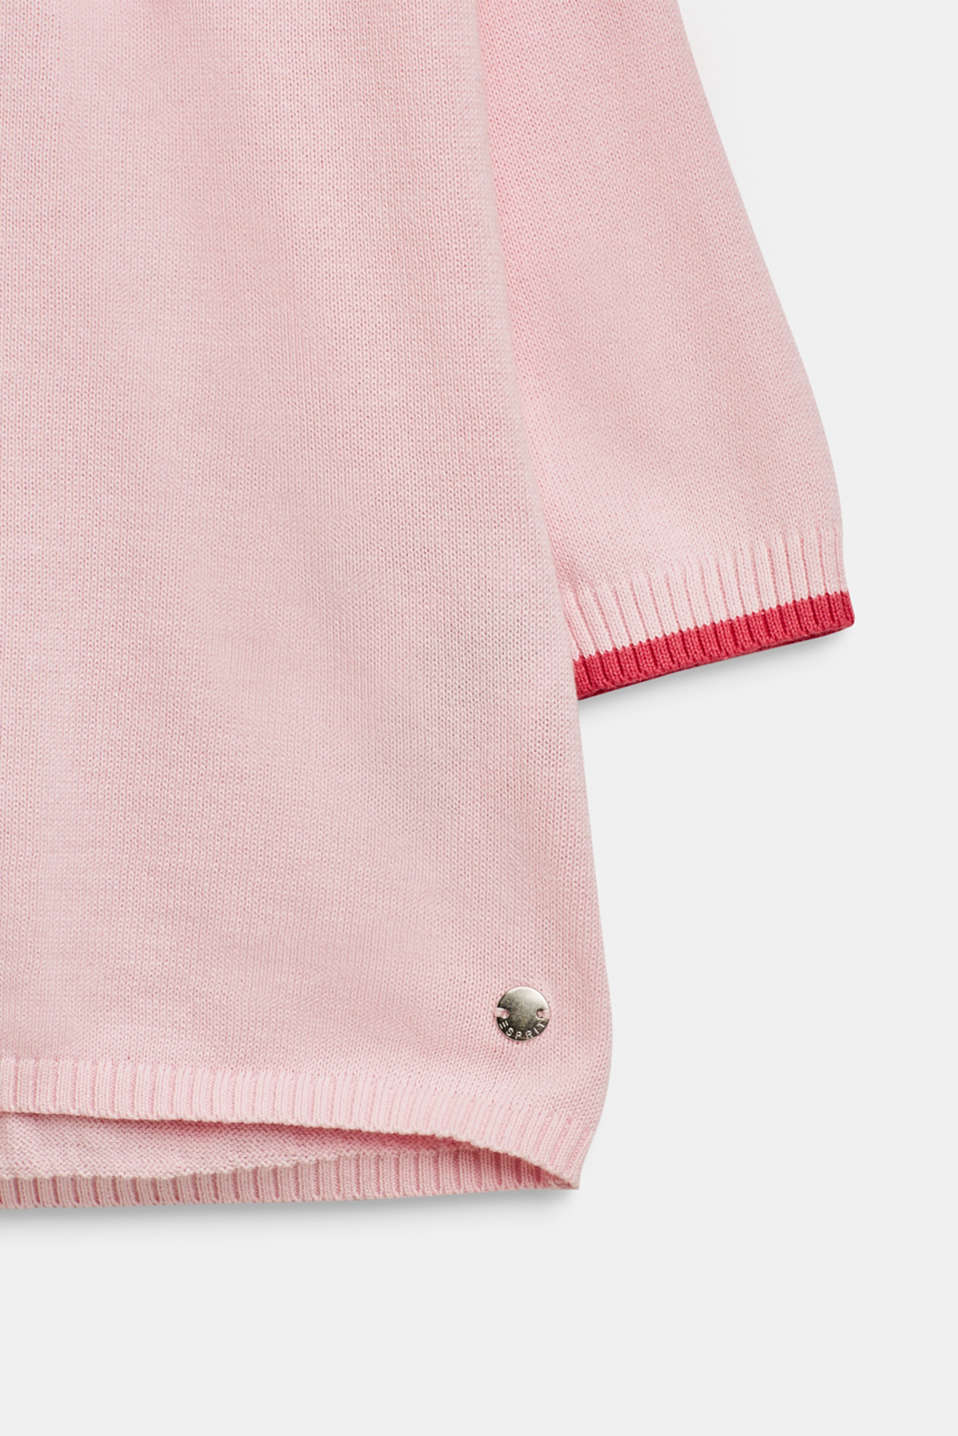 Sweaters cardigan, LCBLUSH, detail image number 2